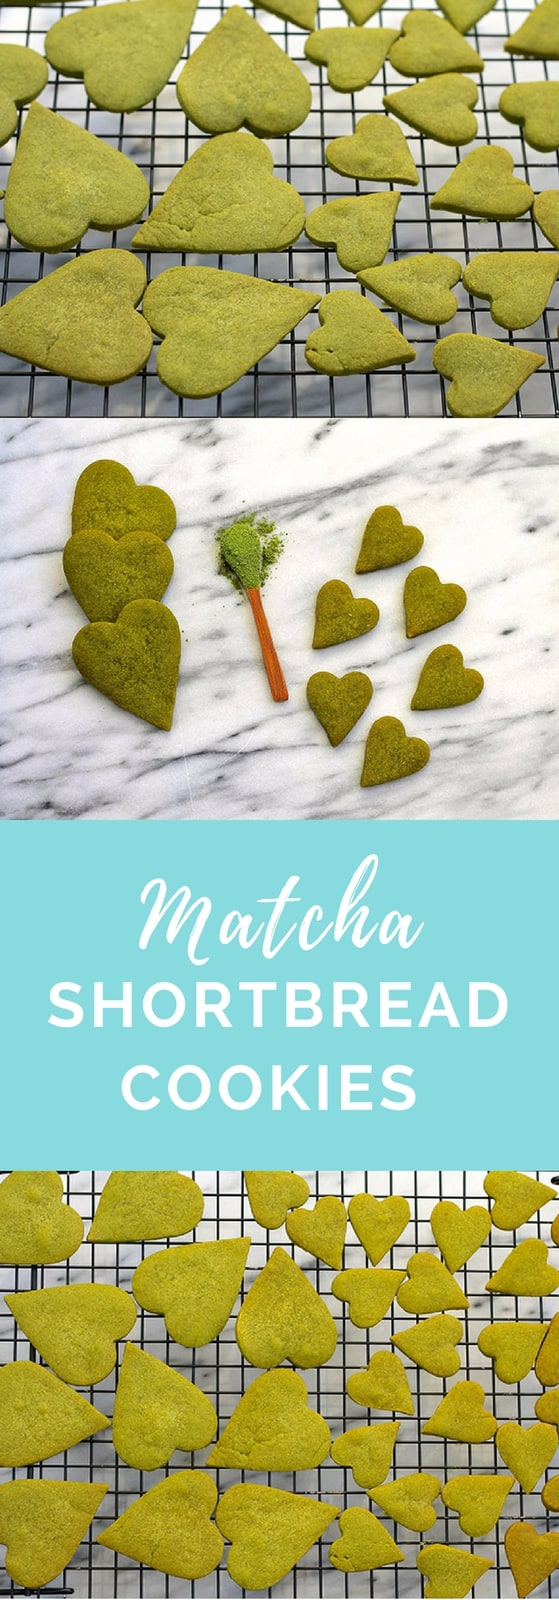 Matcha Shortbread Cookies! Perfect for St. Patrick's Day or any time of year, really. The vibrant green colour comes naturally thanks to matcha green tea powder, which gives a delicate flavour perfect for shortbread. #recipes #cookies #baking #matcha #green #tea